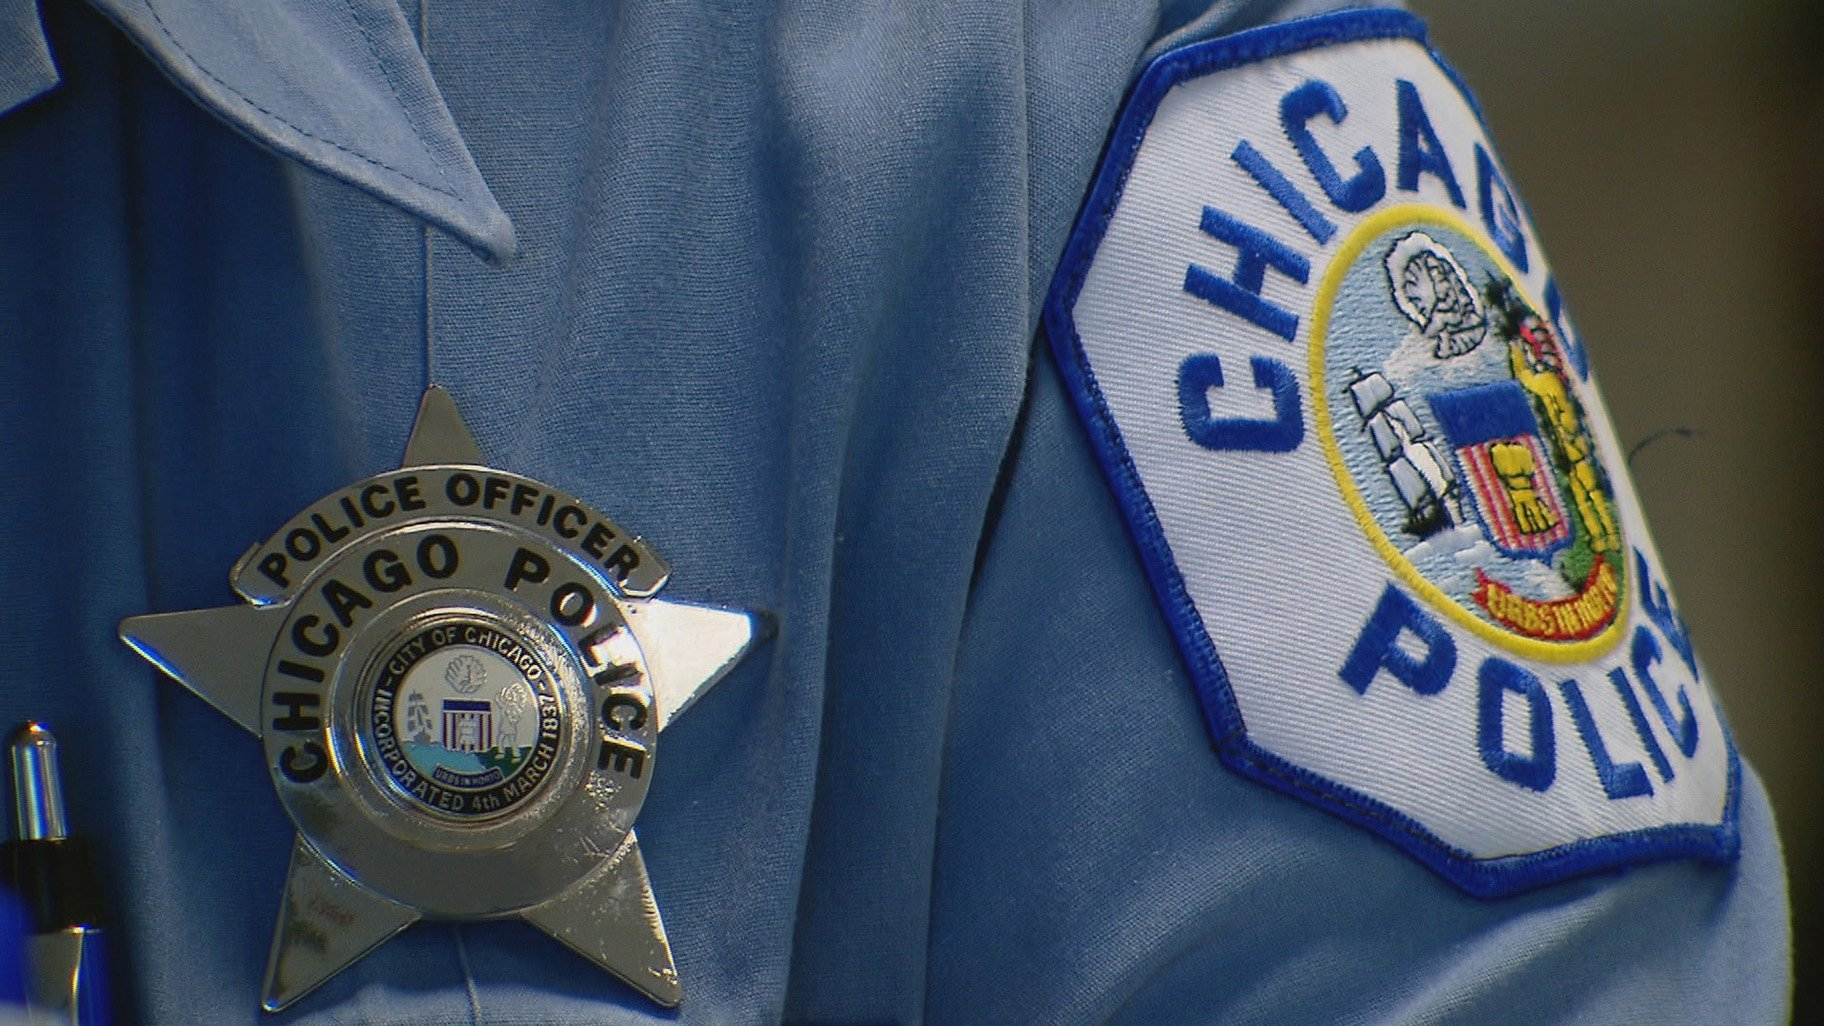 Chicago's Inspector General Finds City's Police Department Struggles to Hire Black Applicants